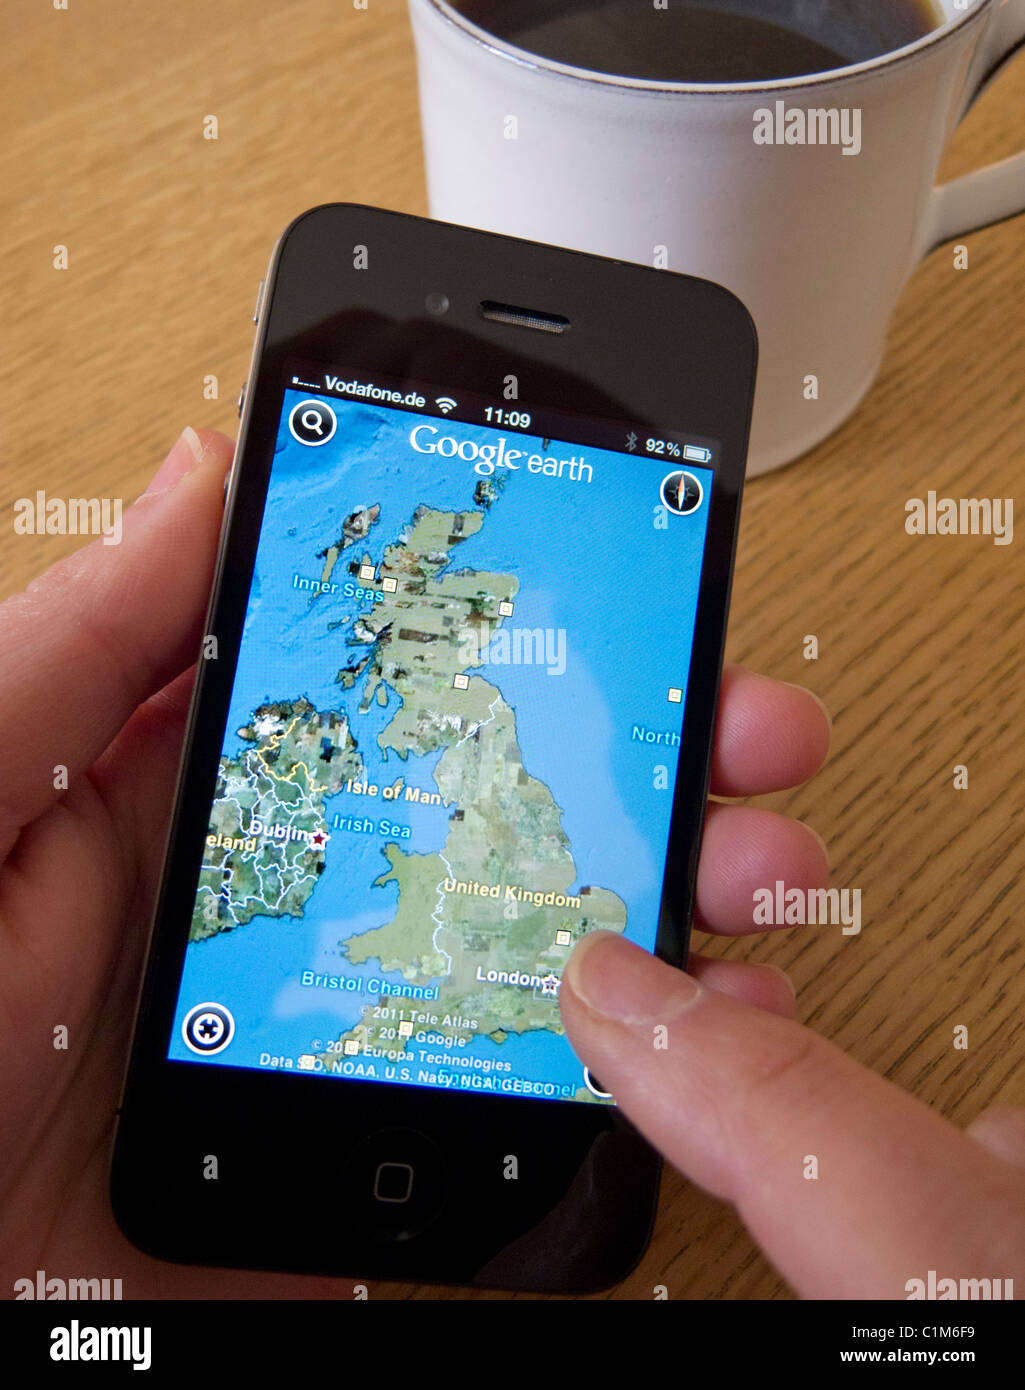 Using Google Earth satellite map on an Apple iphone 4G smart phone - Stock Image